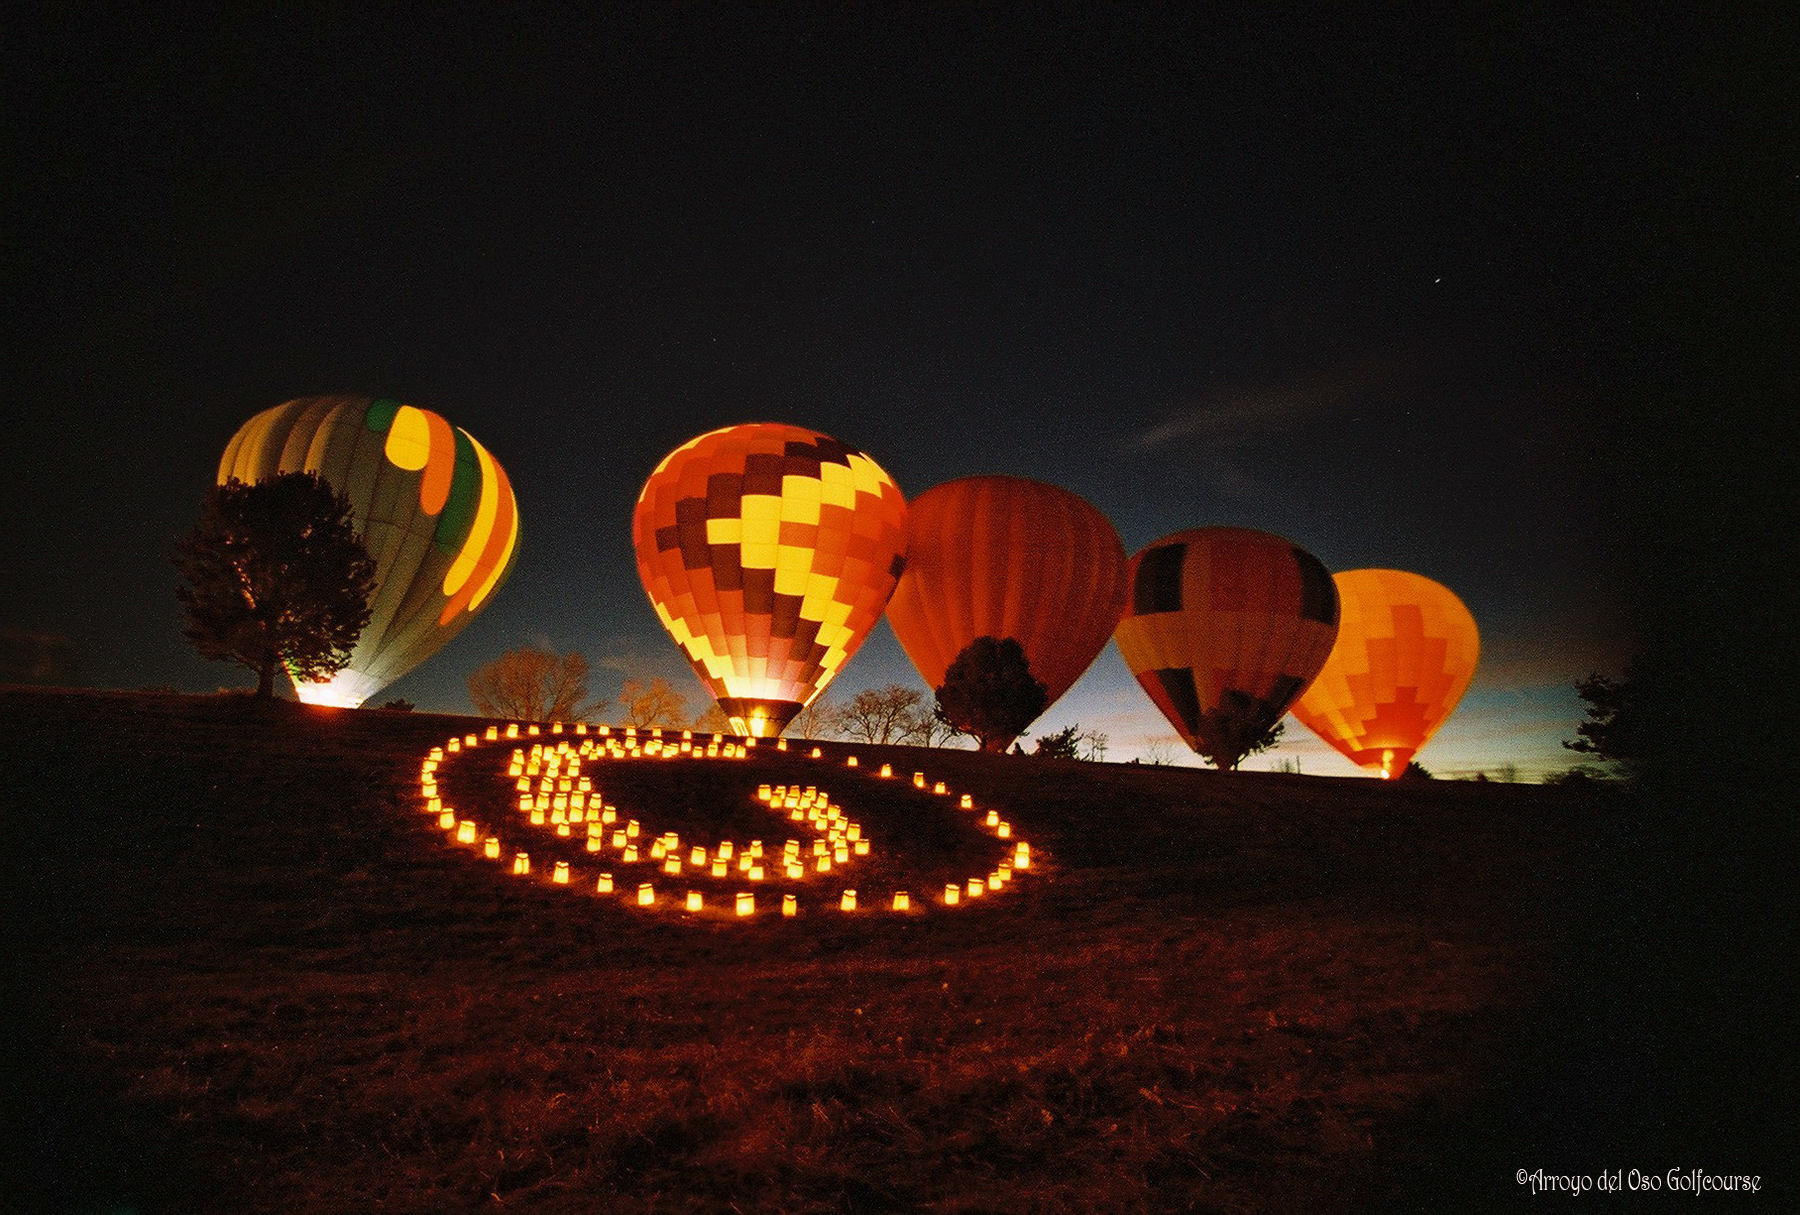 Arroyo del Oso Balloon Glow on Christmas Eve in Albuquerque